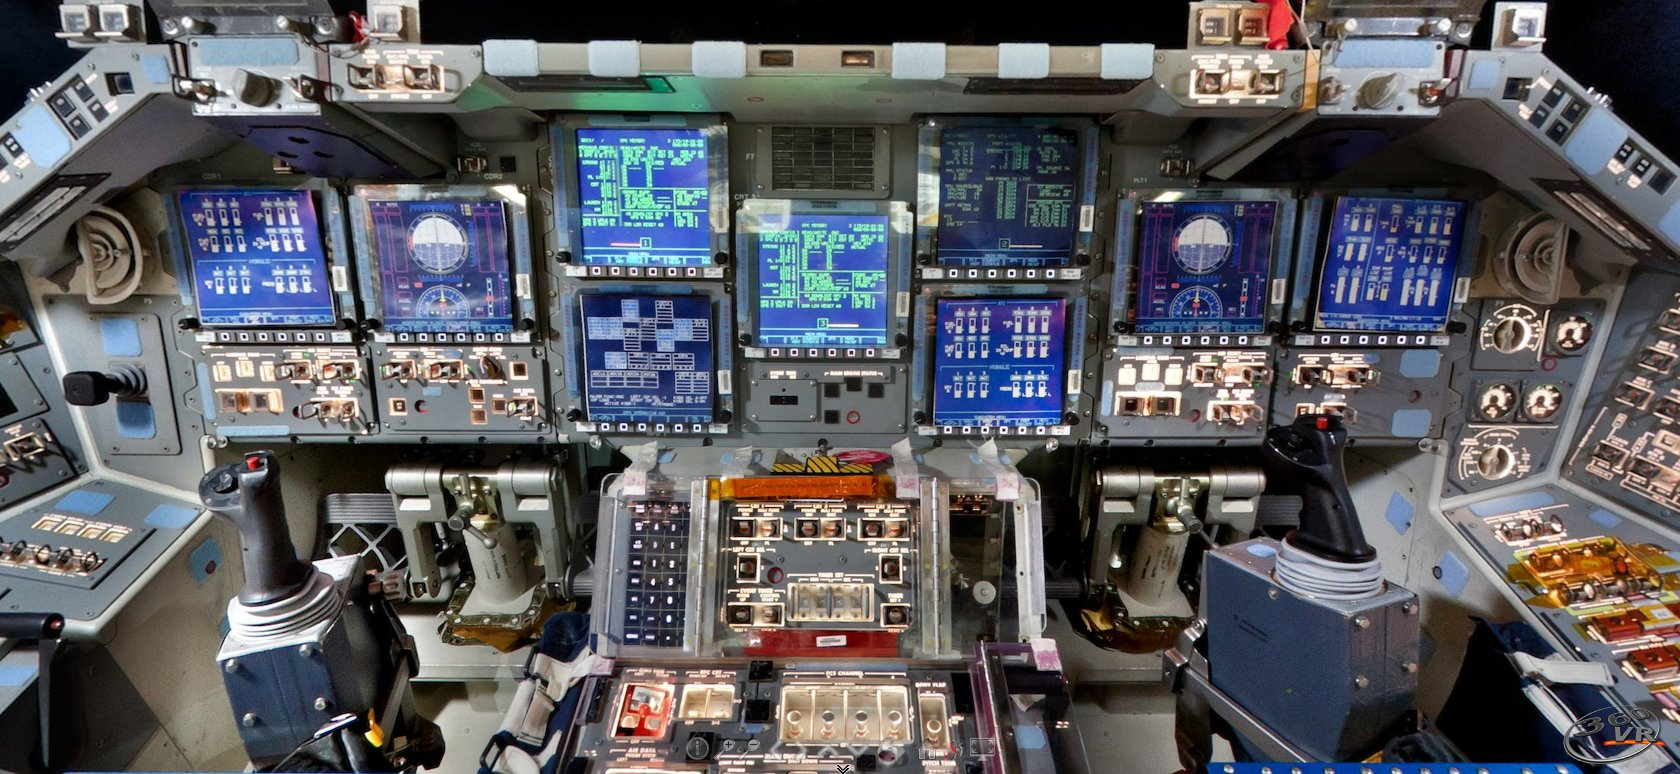 space shuttle discovery inside - photo #3